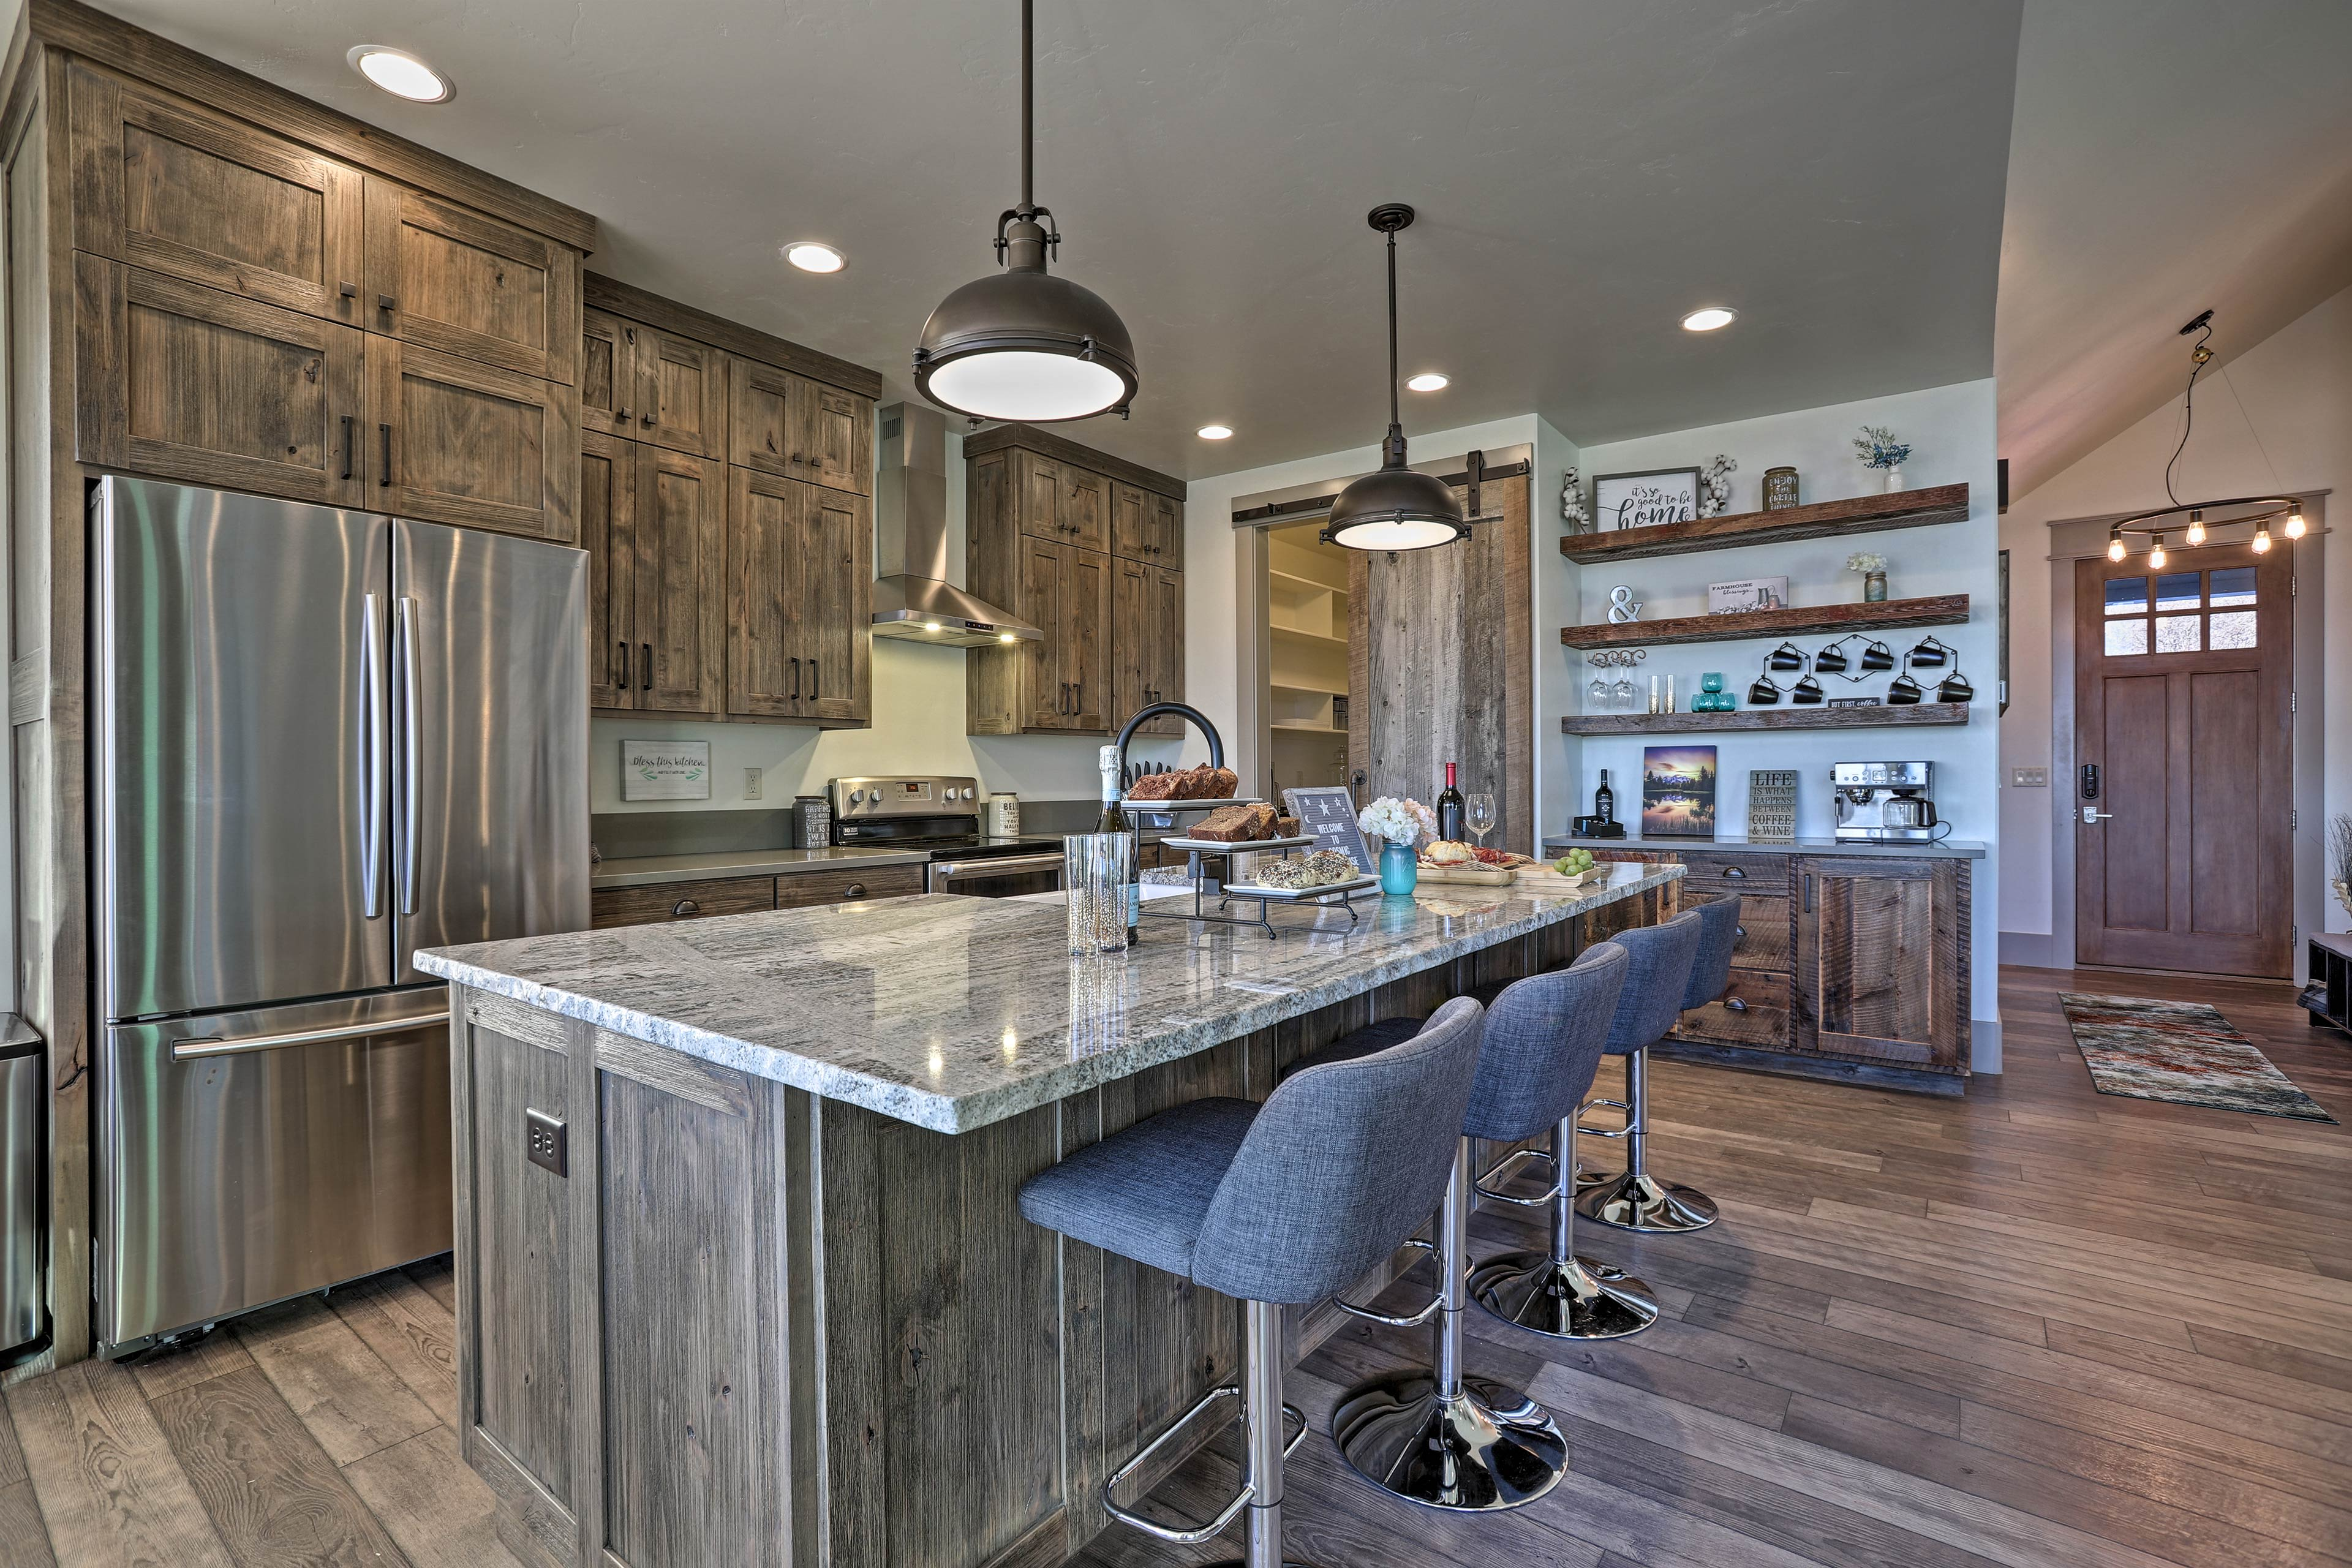 Prepare delicious treats in this modern fully equipped kitchen.